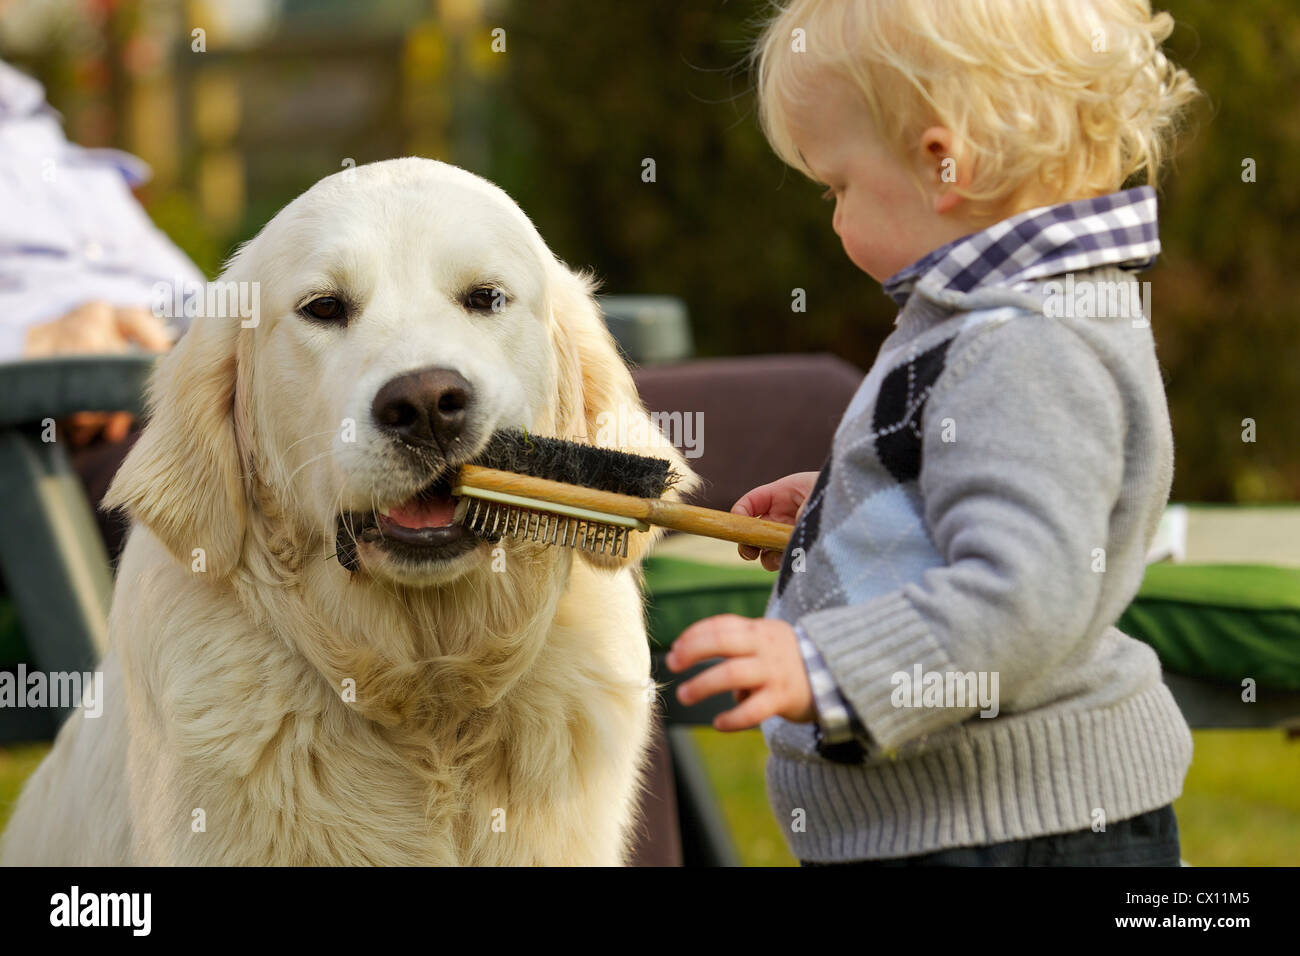 Little boy letting golden retriever chew a brush - Stock Image